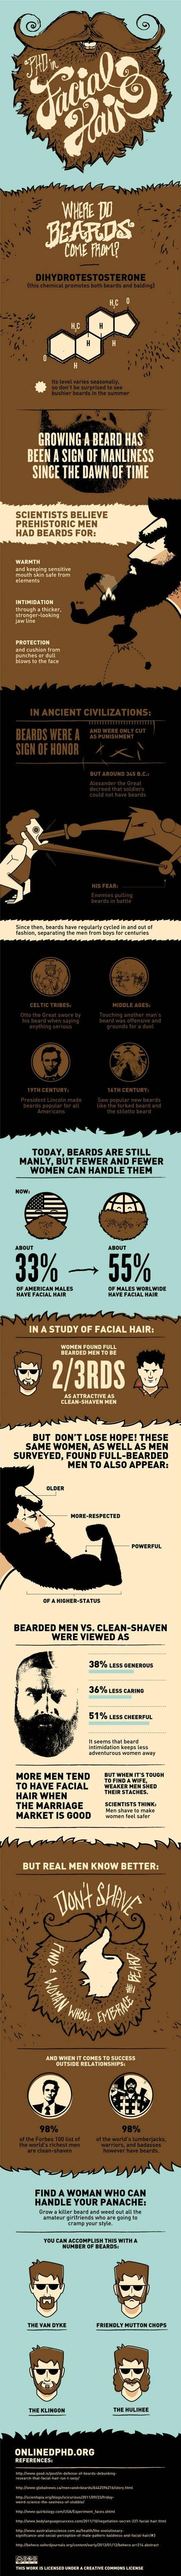 Where Do Beards Come From